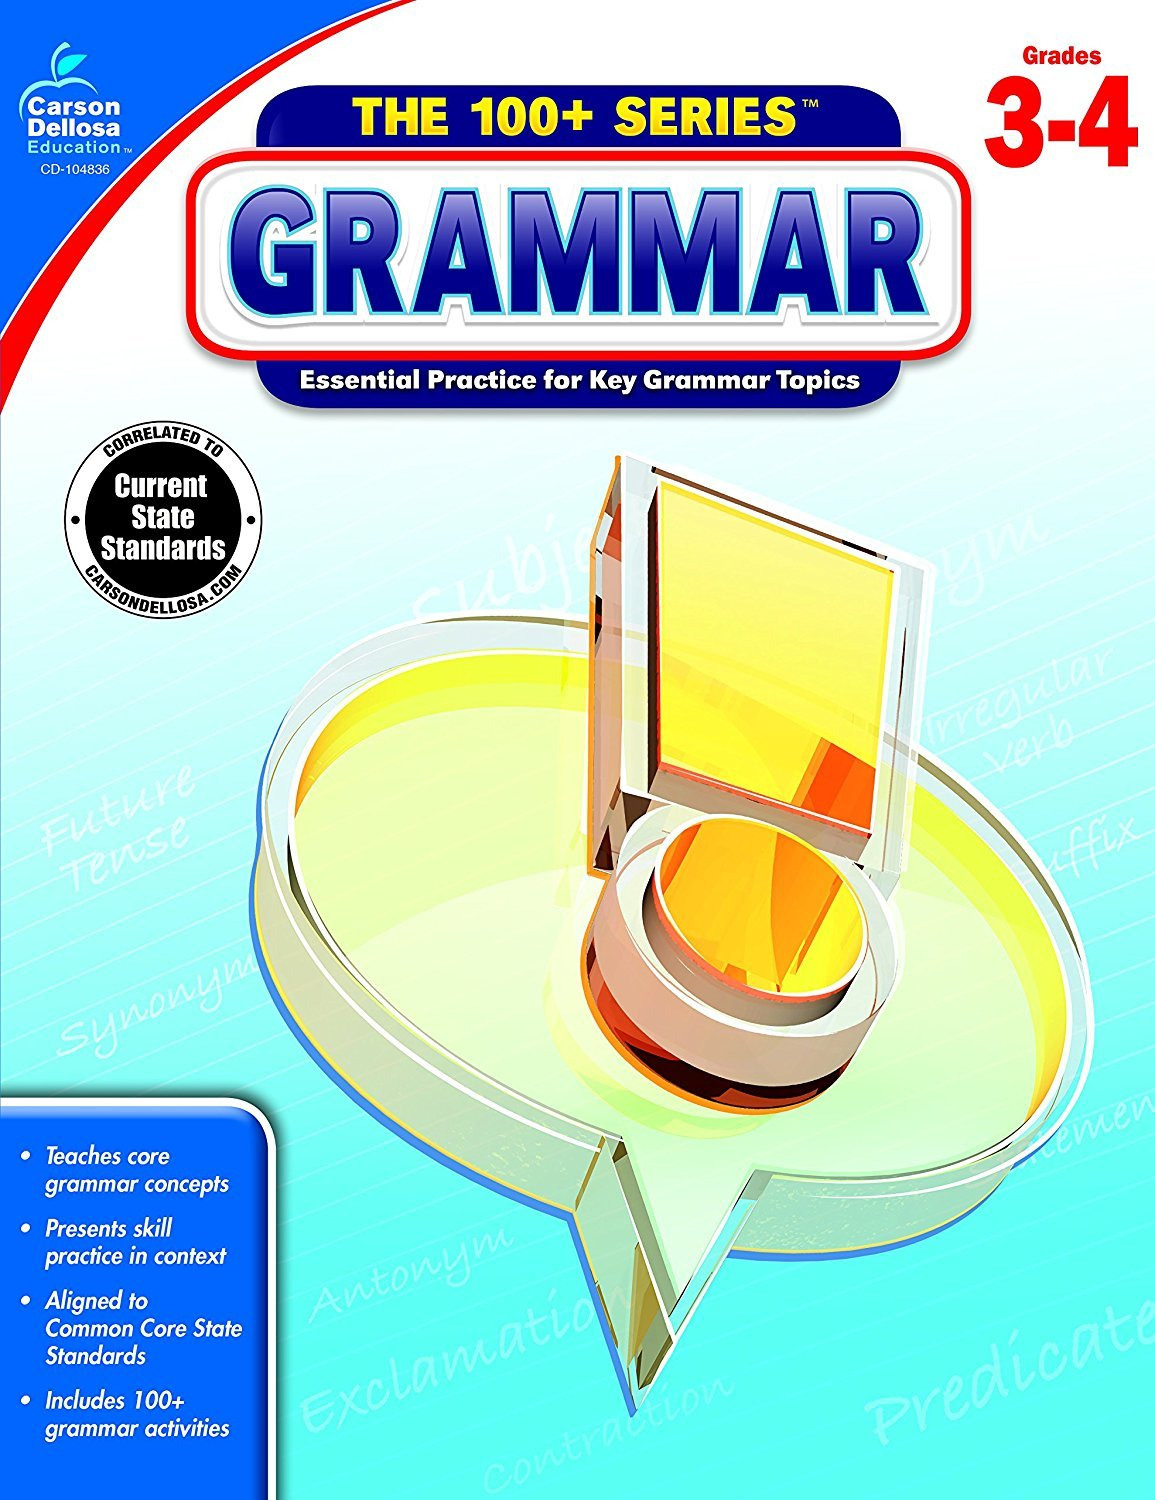 CD 104836 THE 100+ SERIES GRAMMAR G3-4